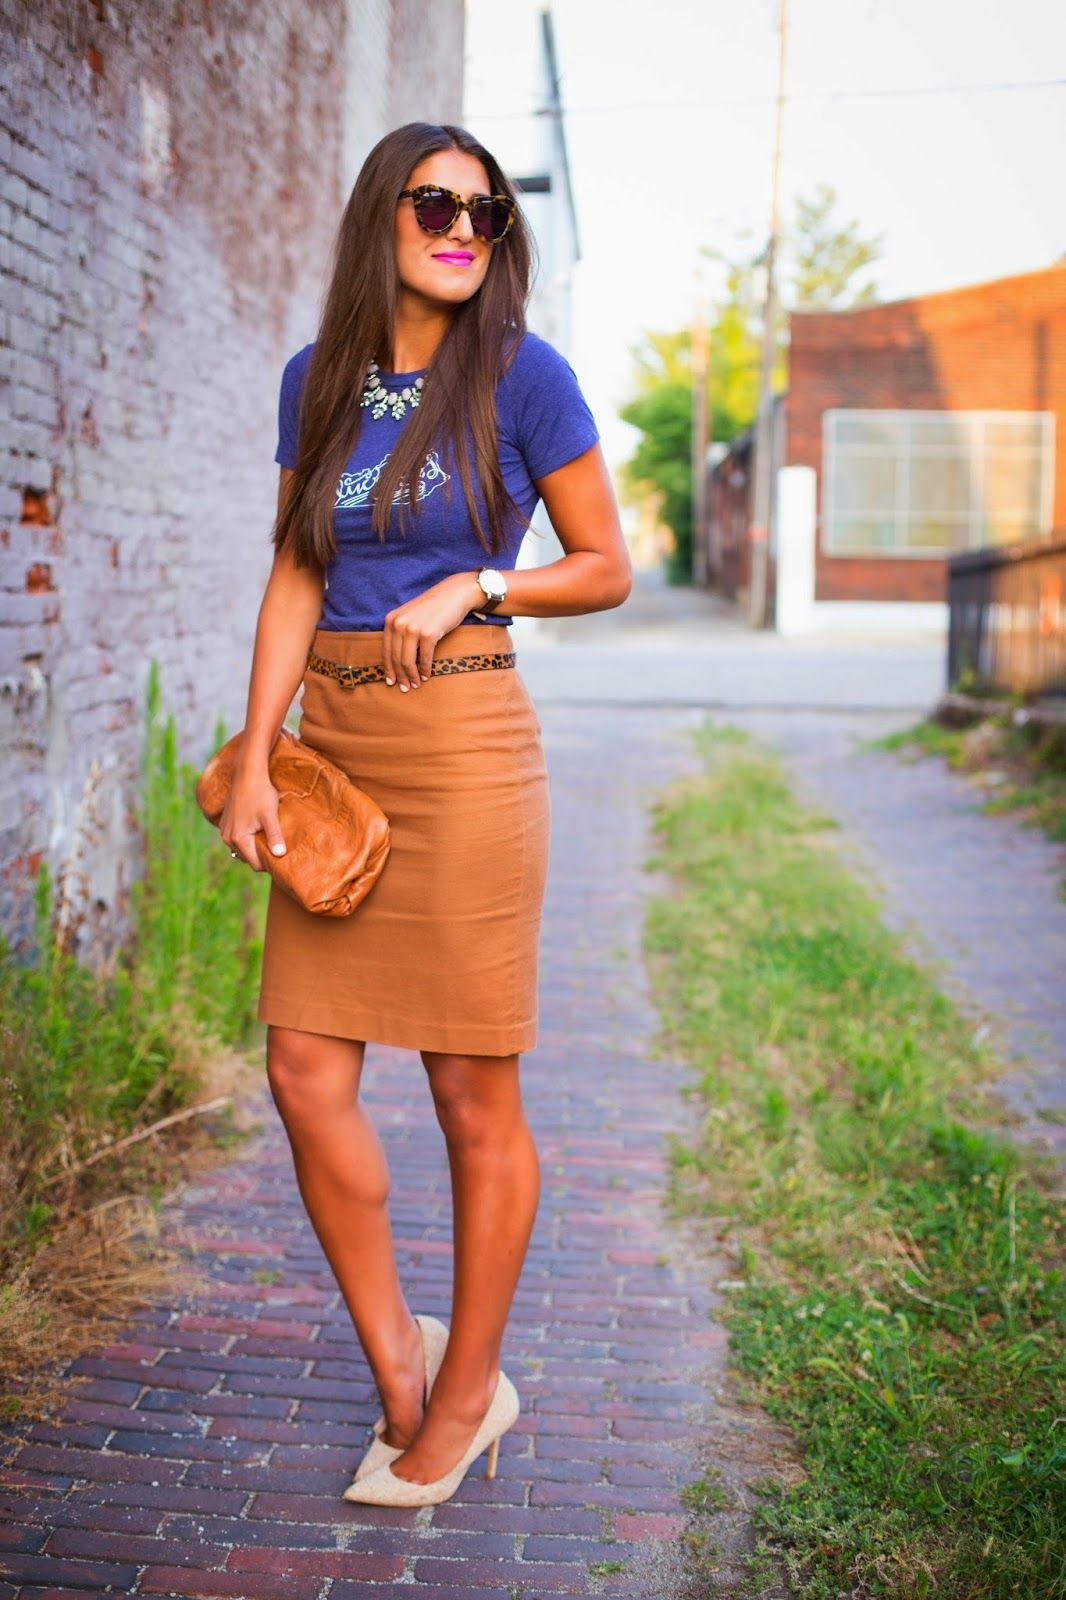 Bluegrass modest church outfits hipster fashion outfits